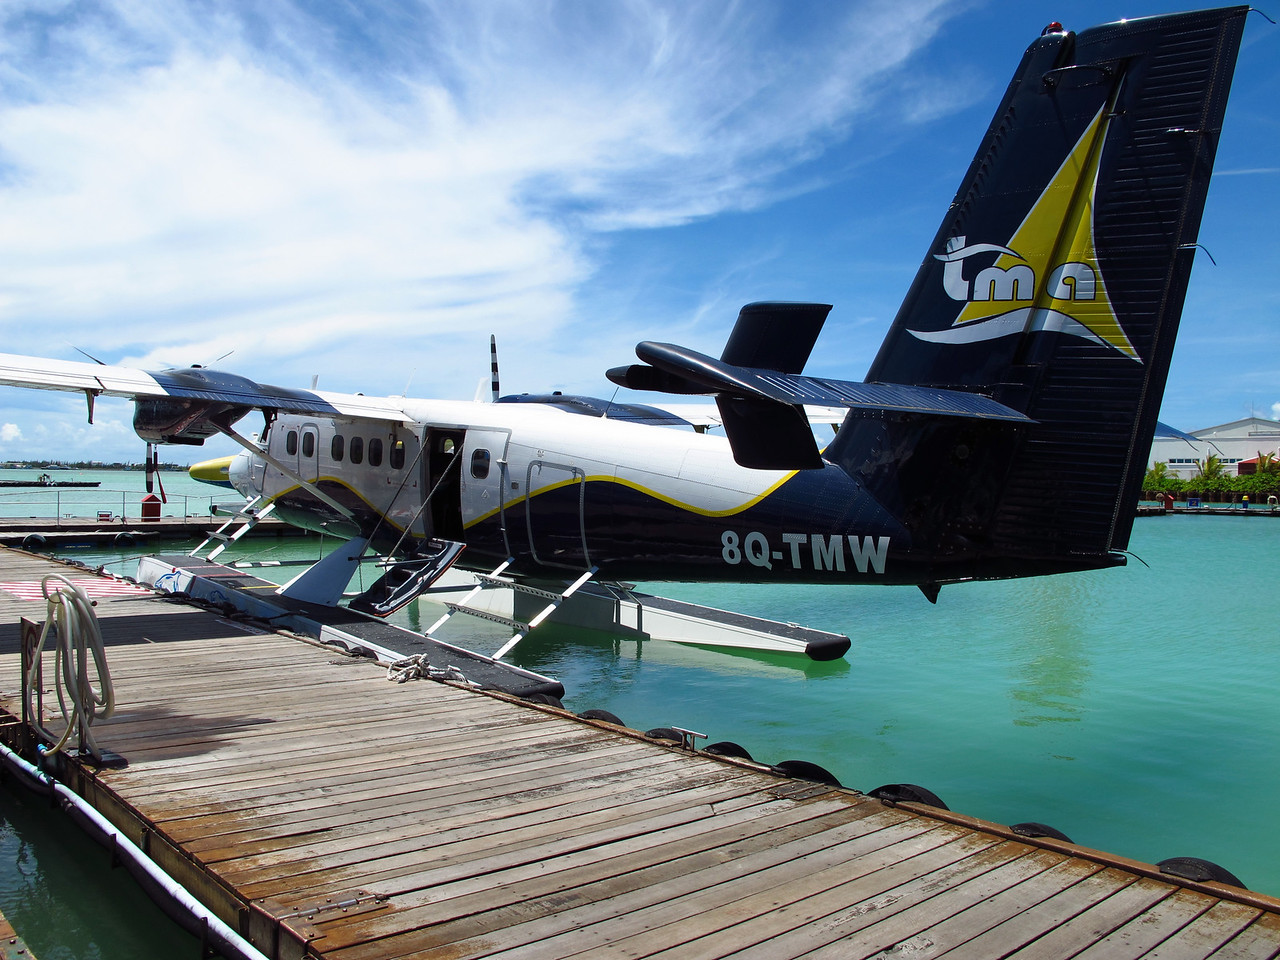 Air taxis using seaplanes vary in size and usually run on a limited day-time only schedule.